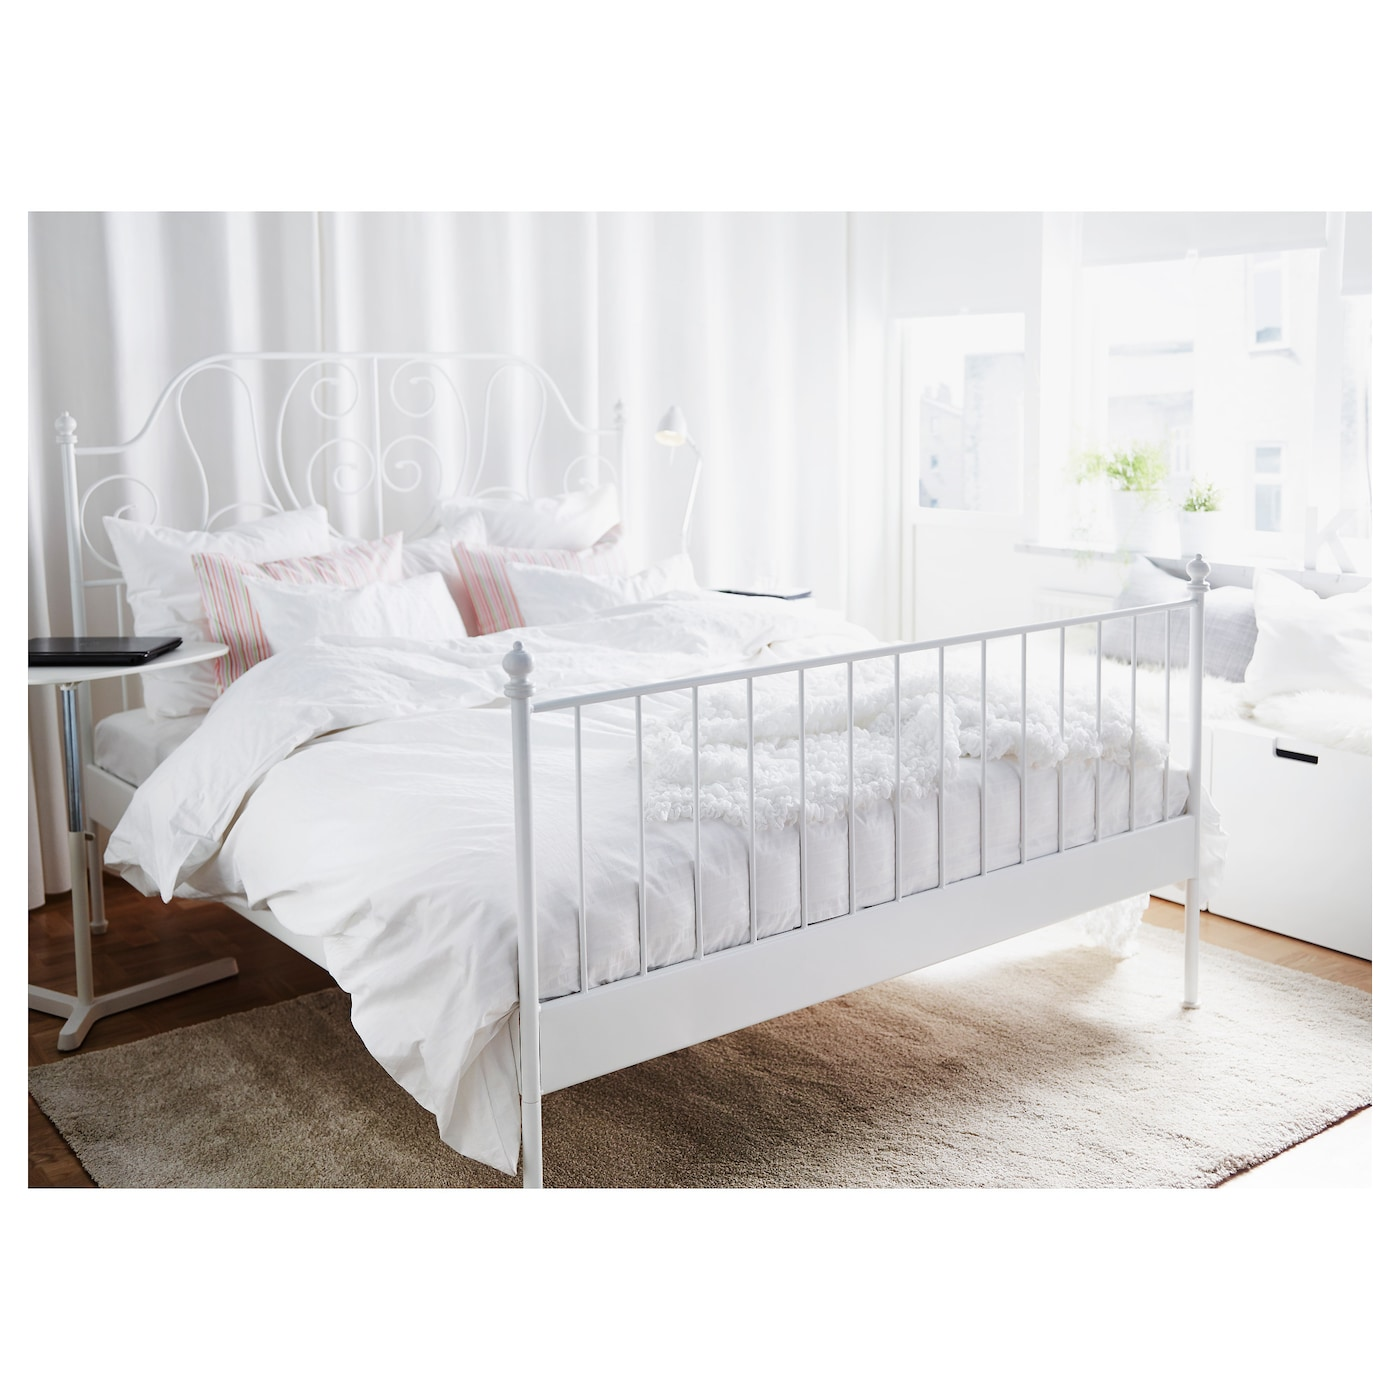 Double Size Bed Frame